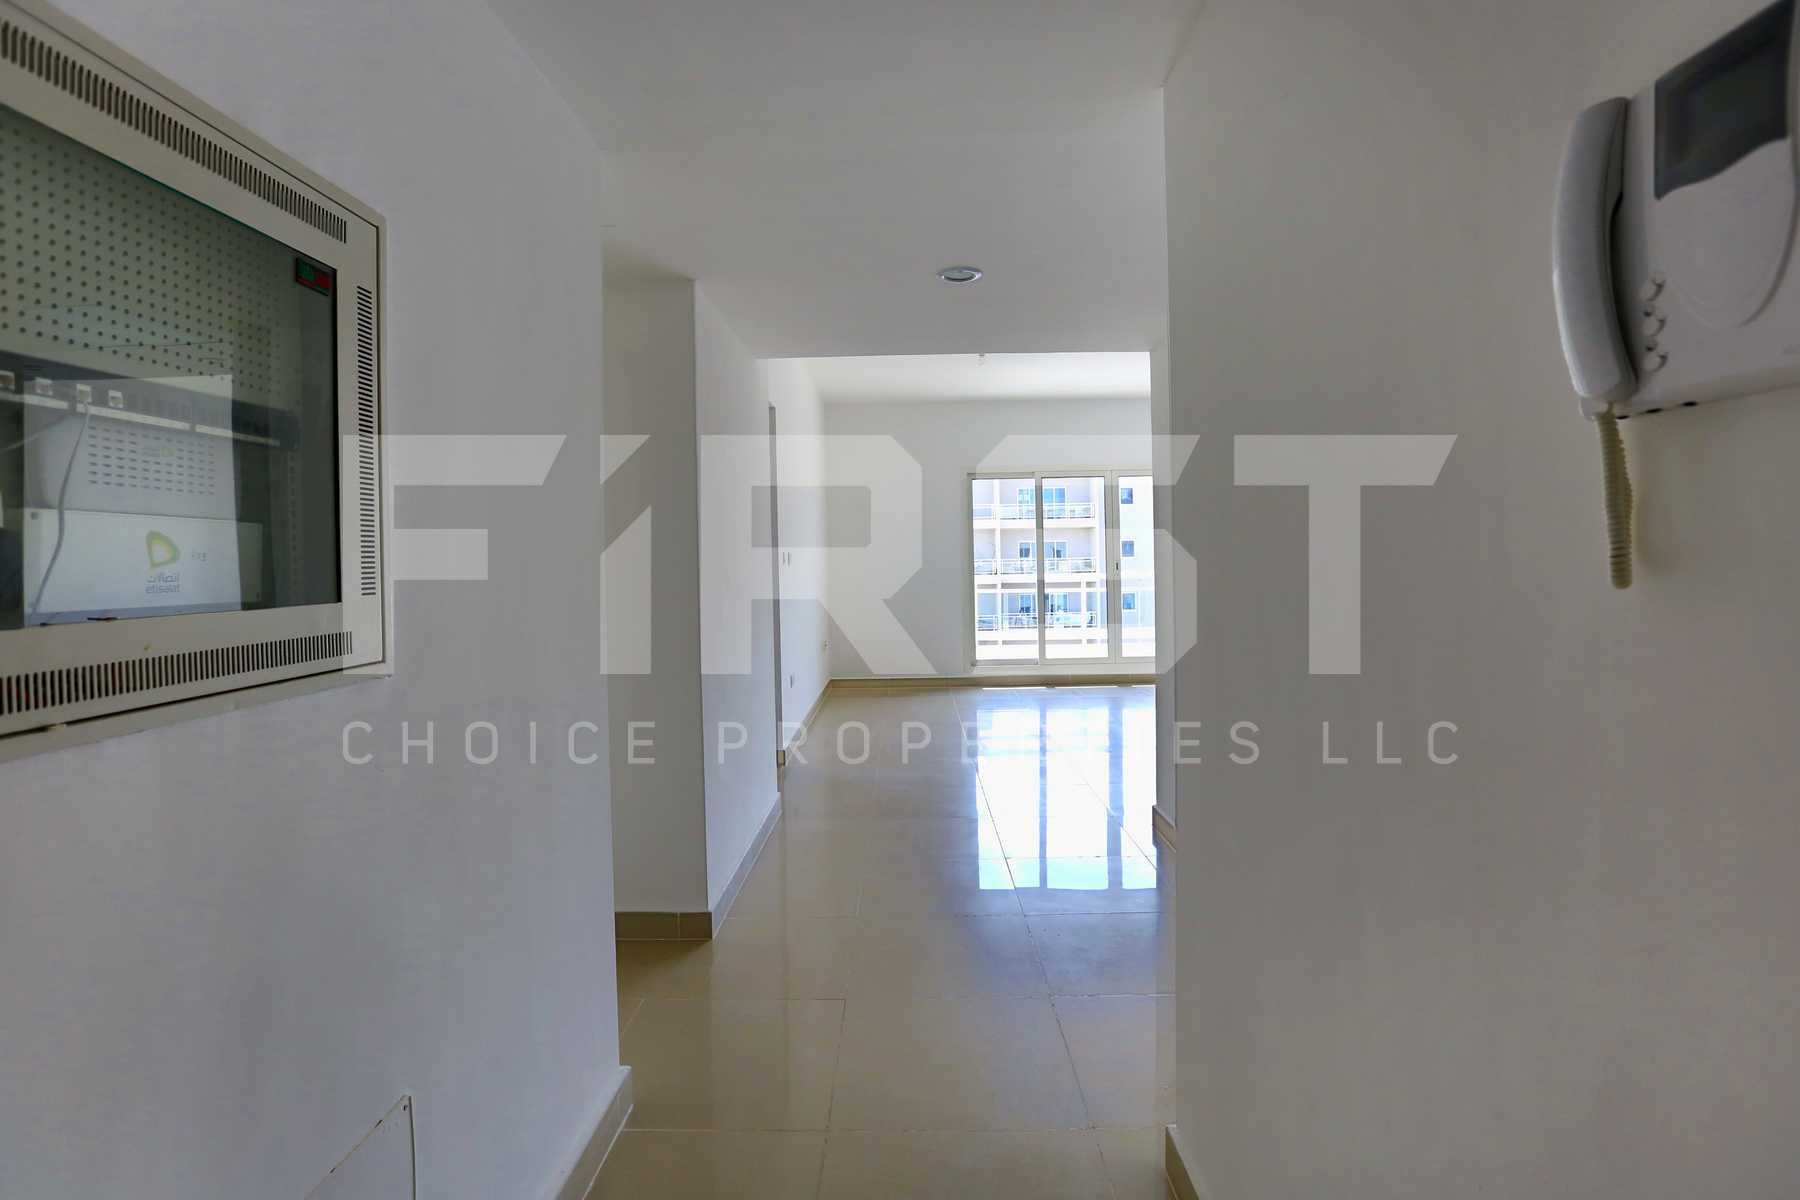 Internal Photo of 2 Bedroom Apartment Type B in Al Reef Downtown Al Reef Abu Dhabi UAE 114 sq.m 1227 (1).jpg